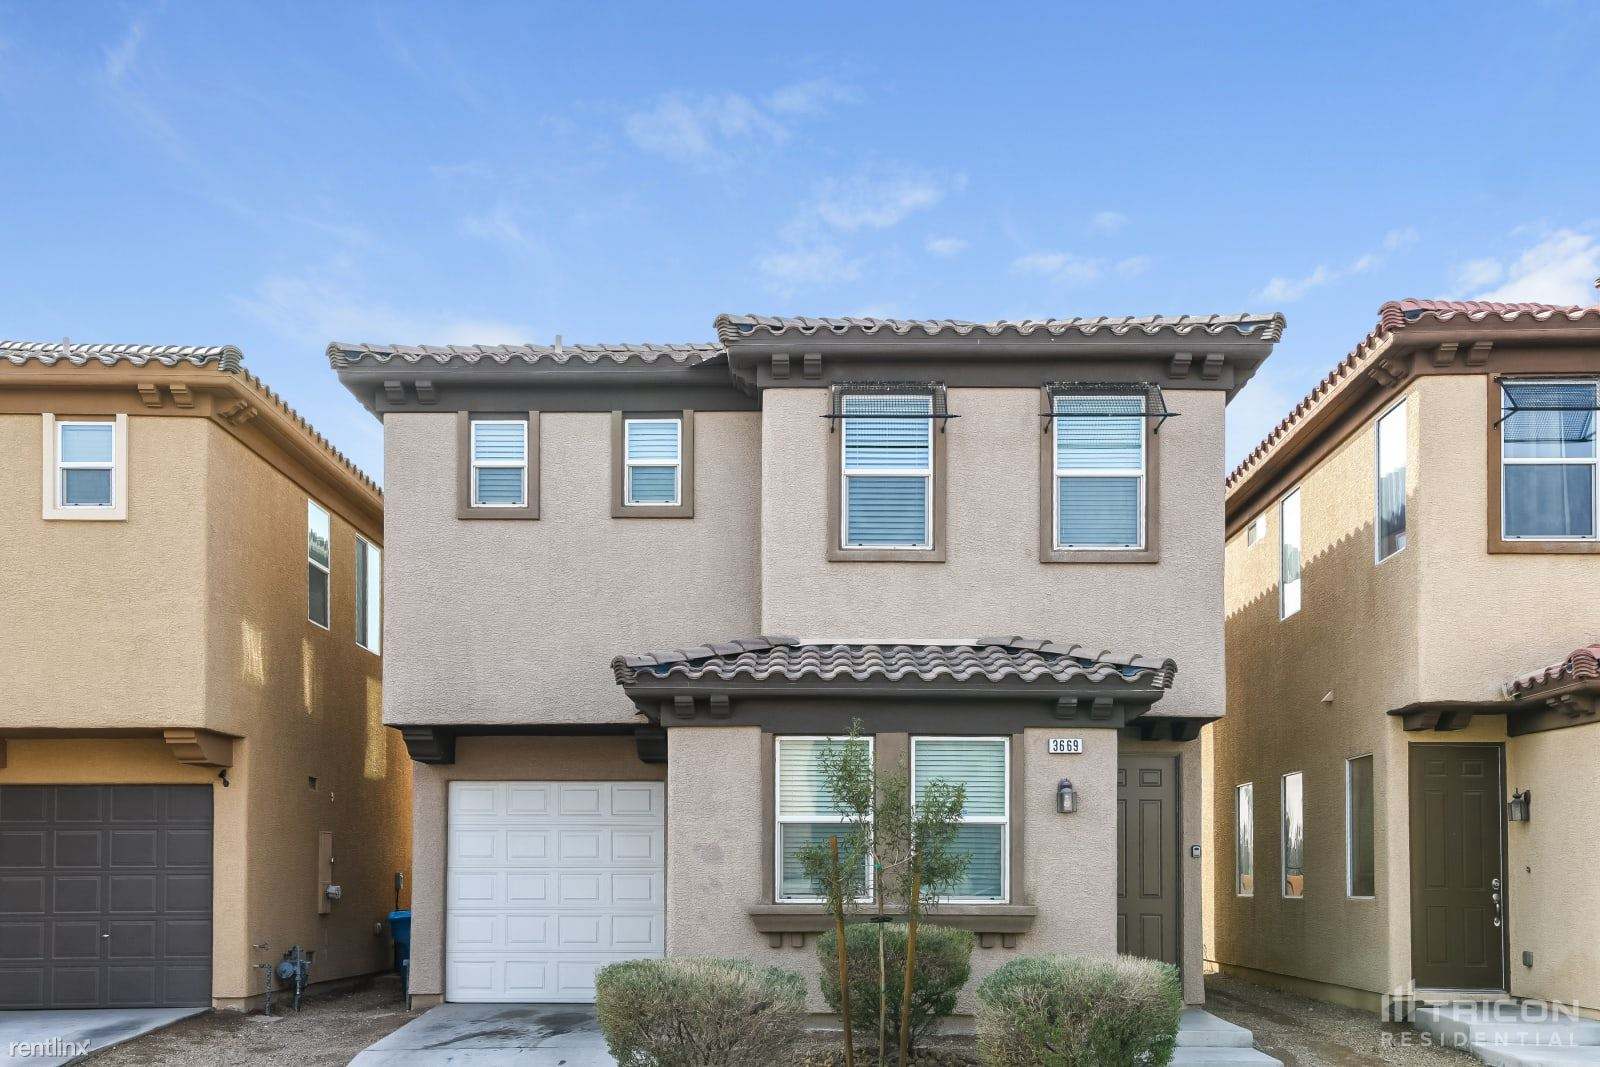 3669 Karissa Heights Place - 2149USD / month